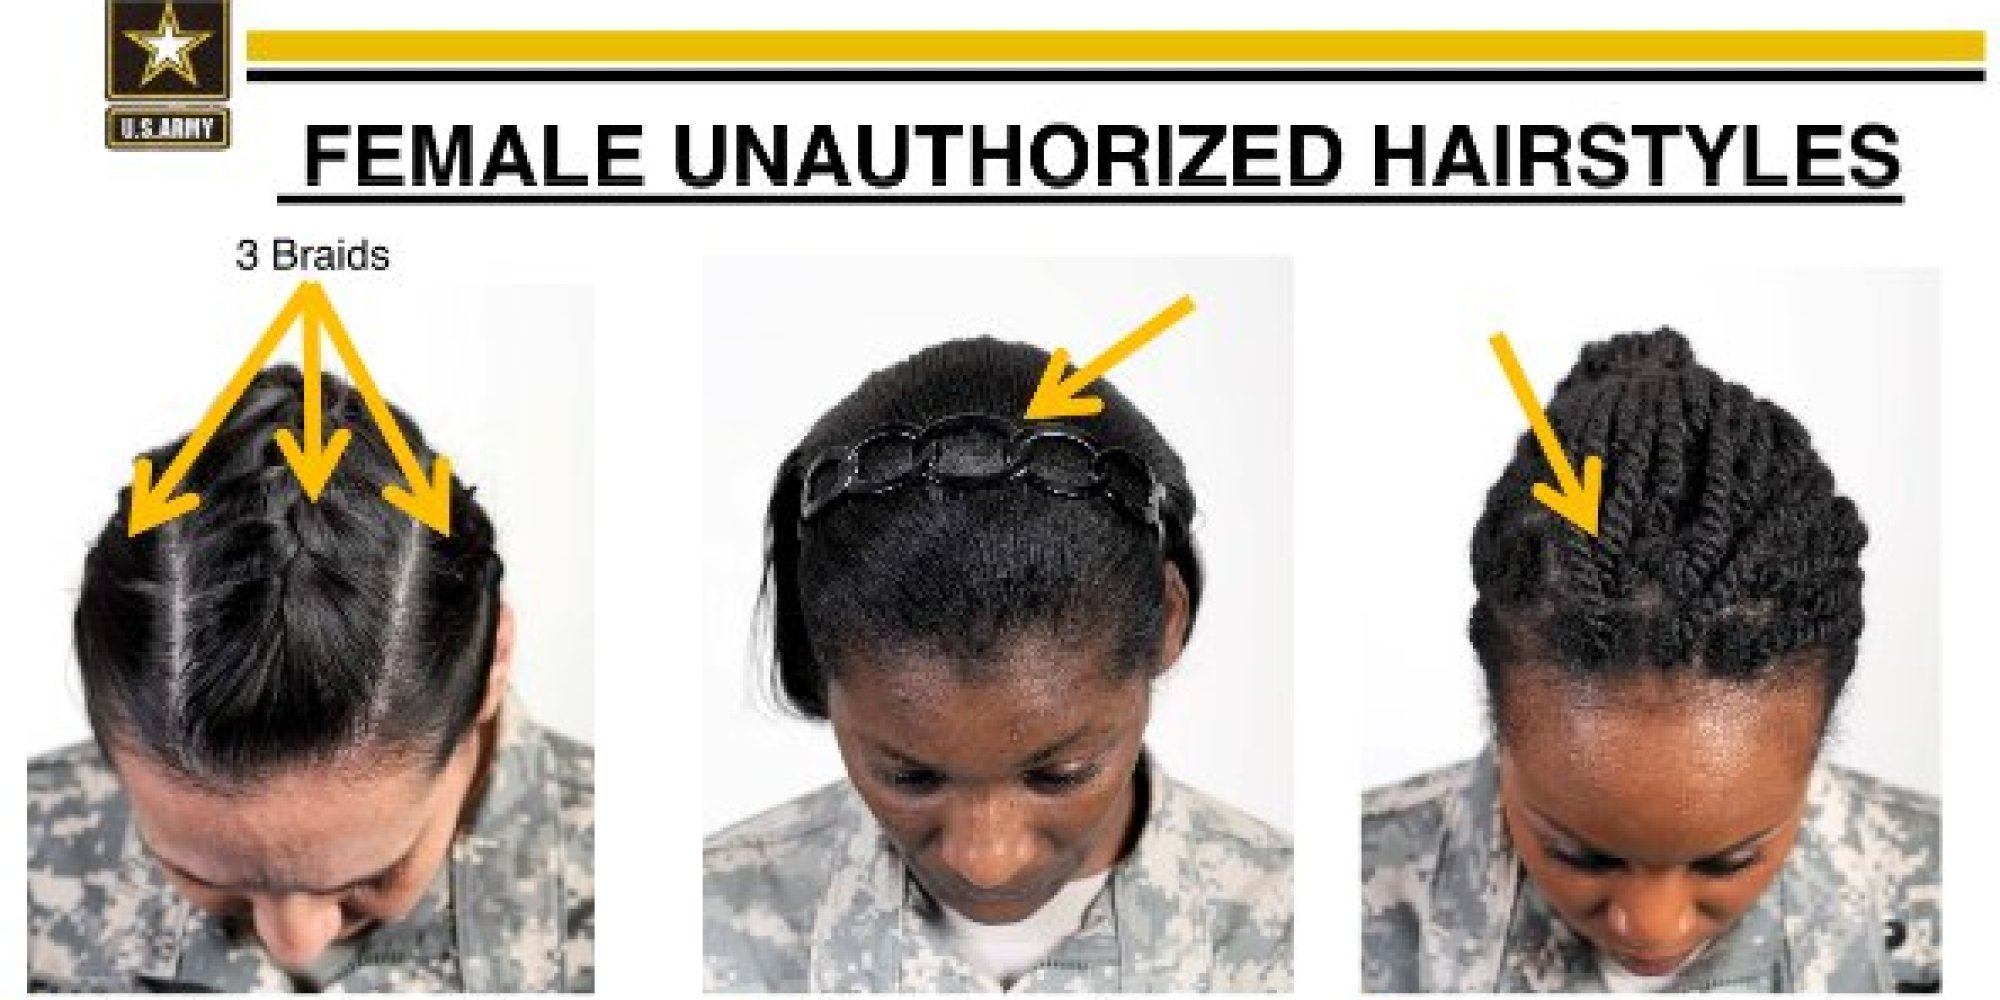 Black Female Soldiers Criticize Armys New Hairstyle Rules